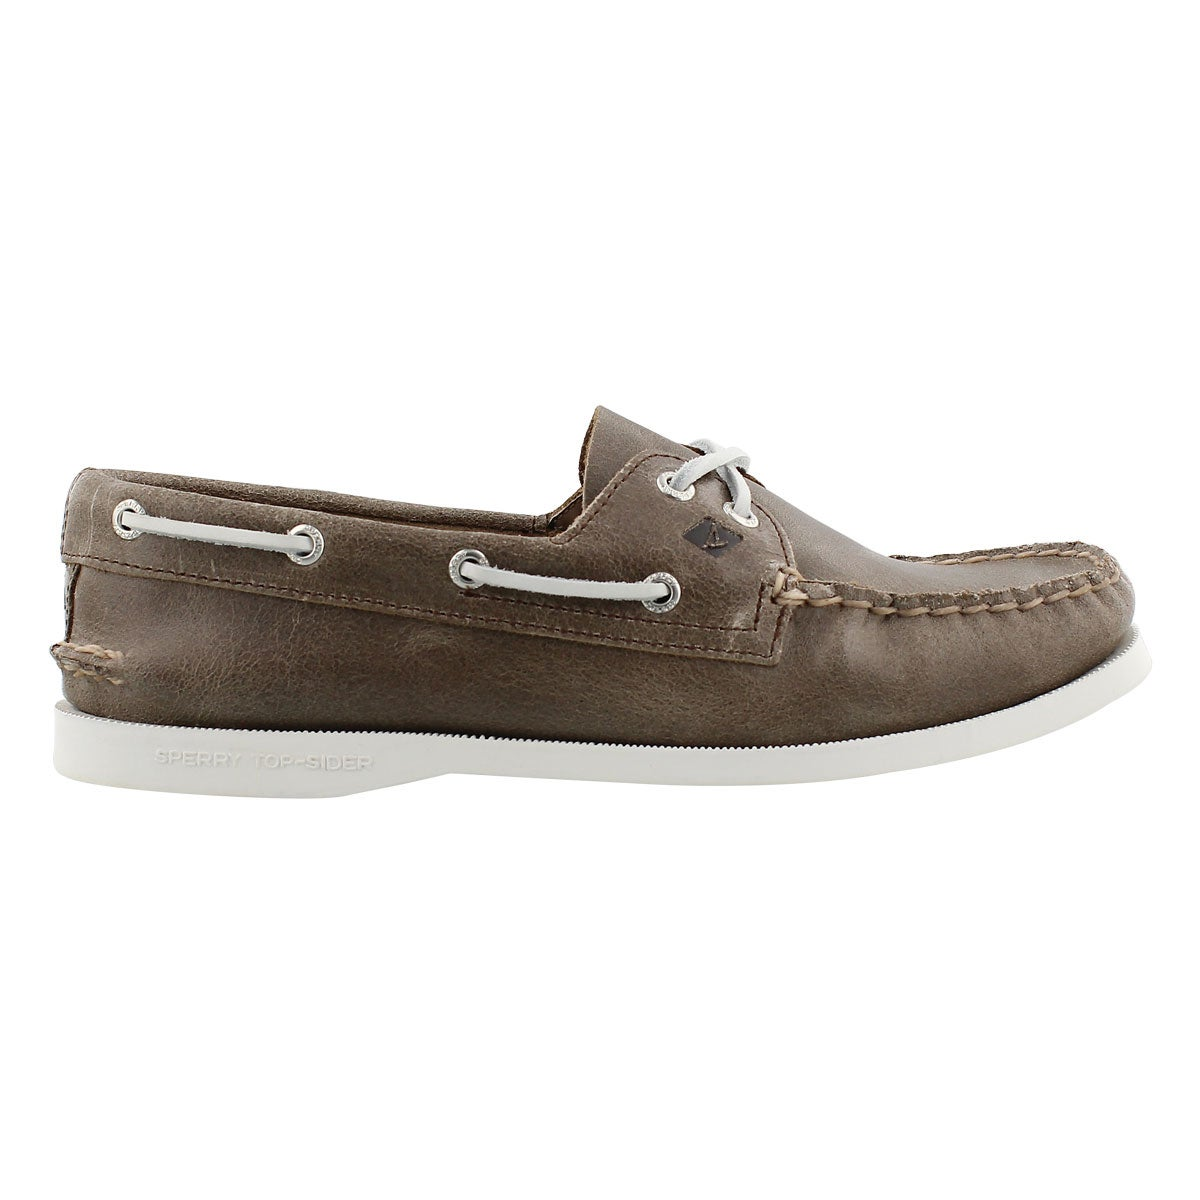 Lds A/O 2-Eye White Cap brown boat shoe